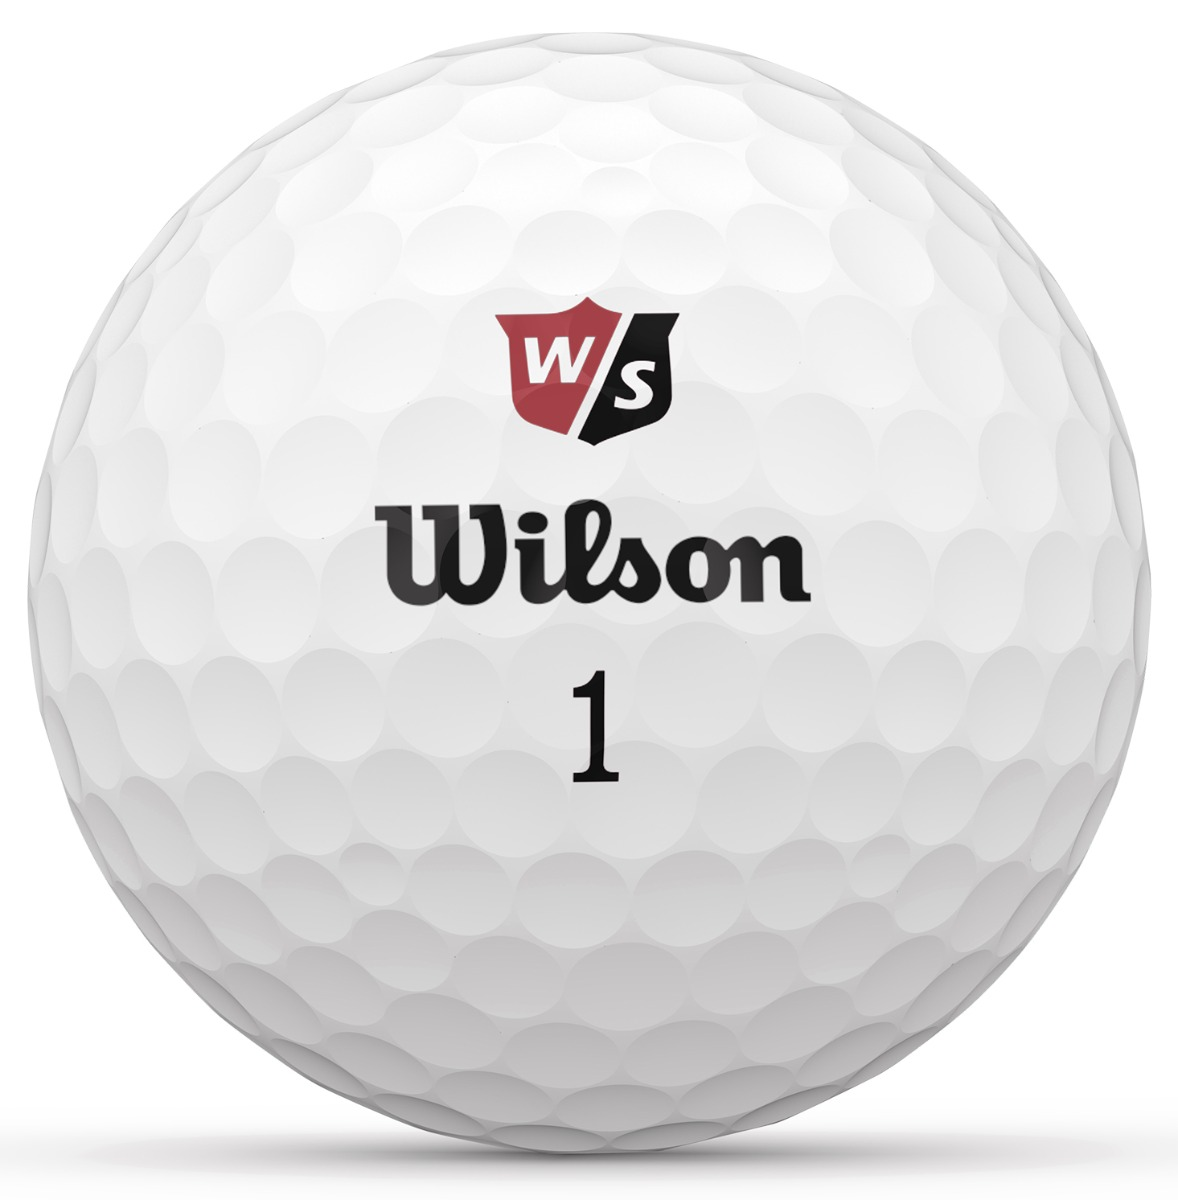 https://www.best4balls.com/pub/media/catalog/product/d/u/duo_soft_ball_600.jpg